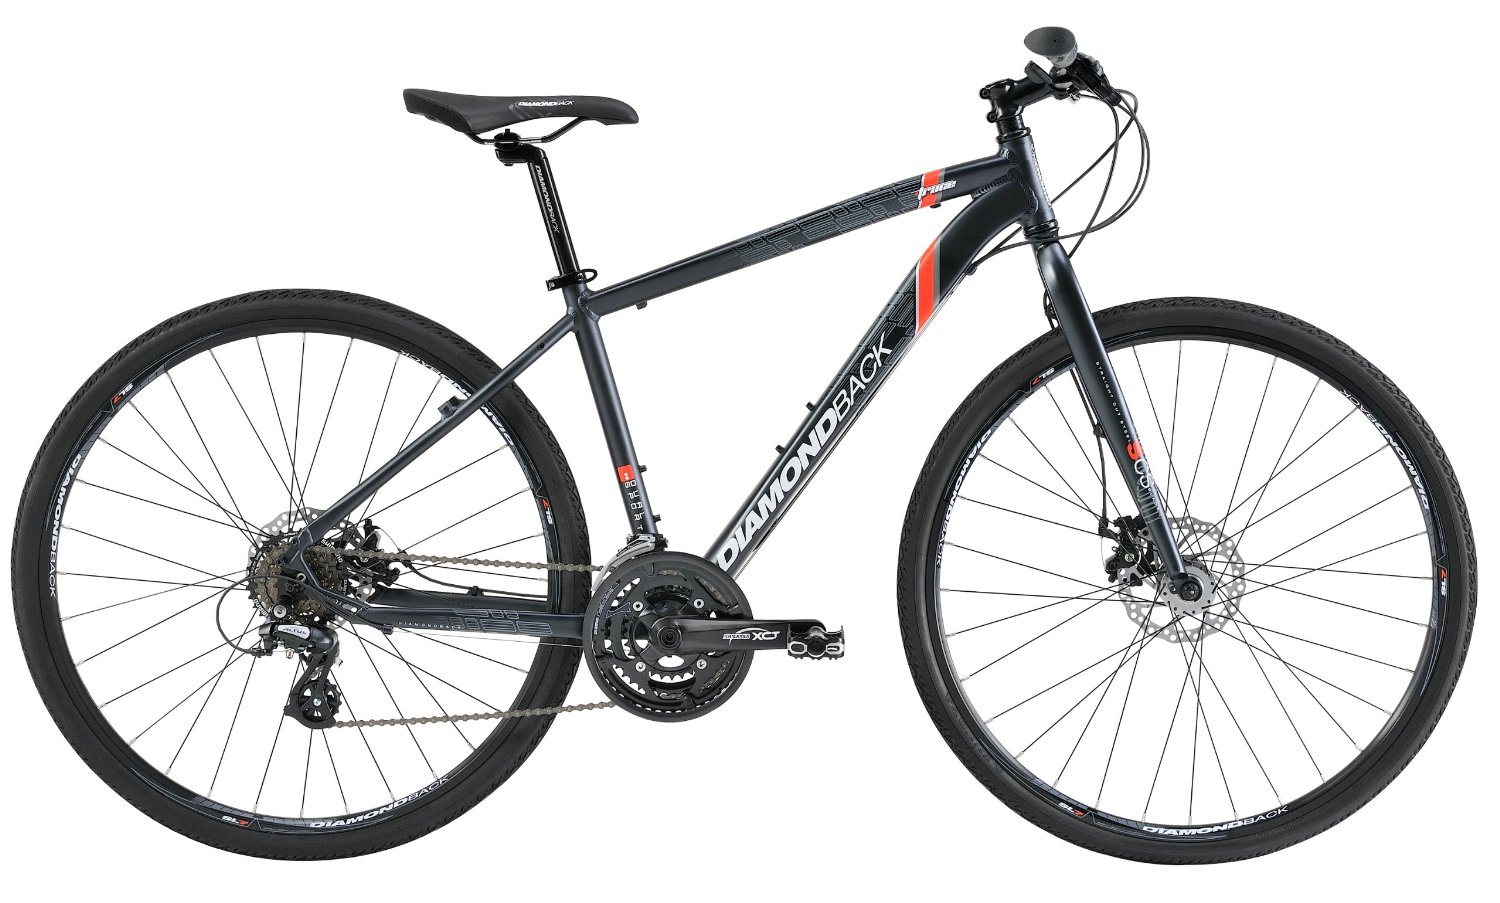 Diamondback Bicycles 2014 Trace Dual Sport Bike Review – My Riding Experience